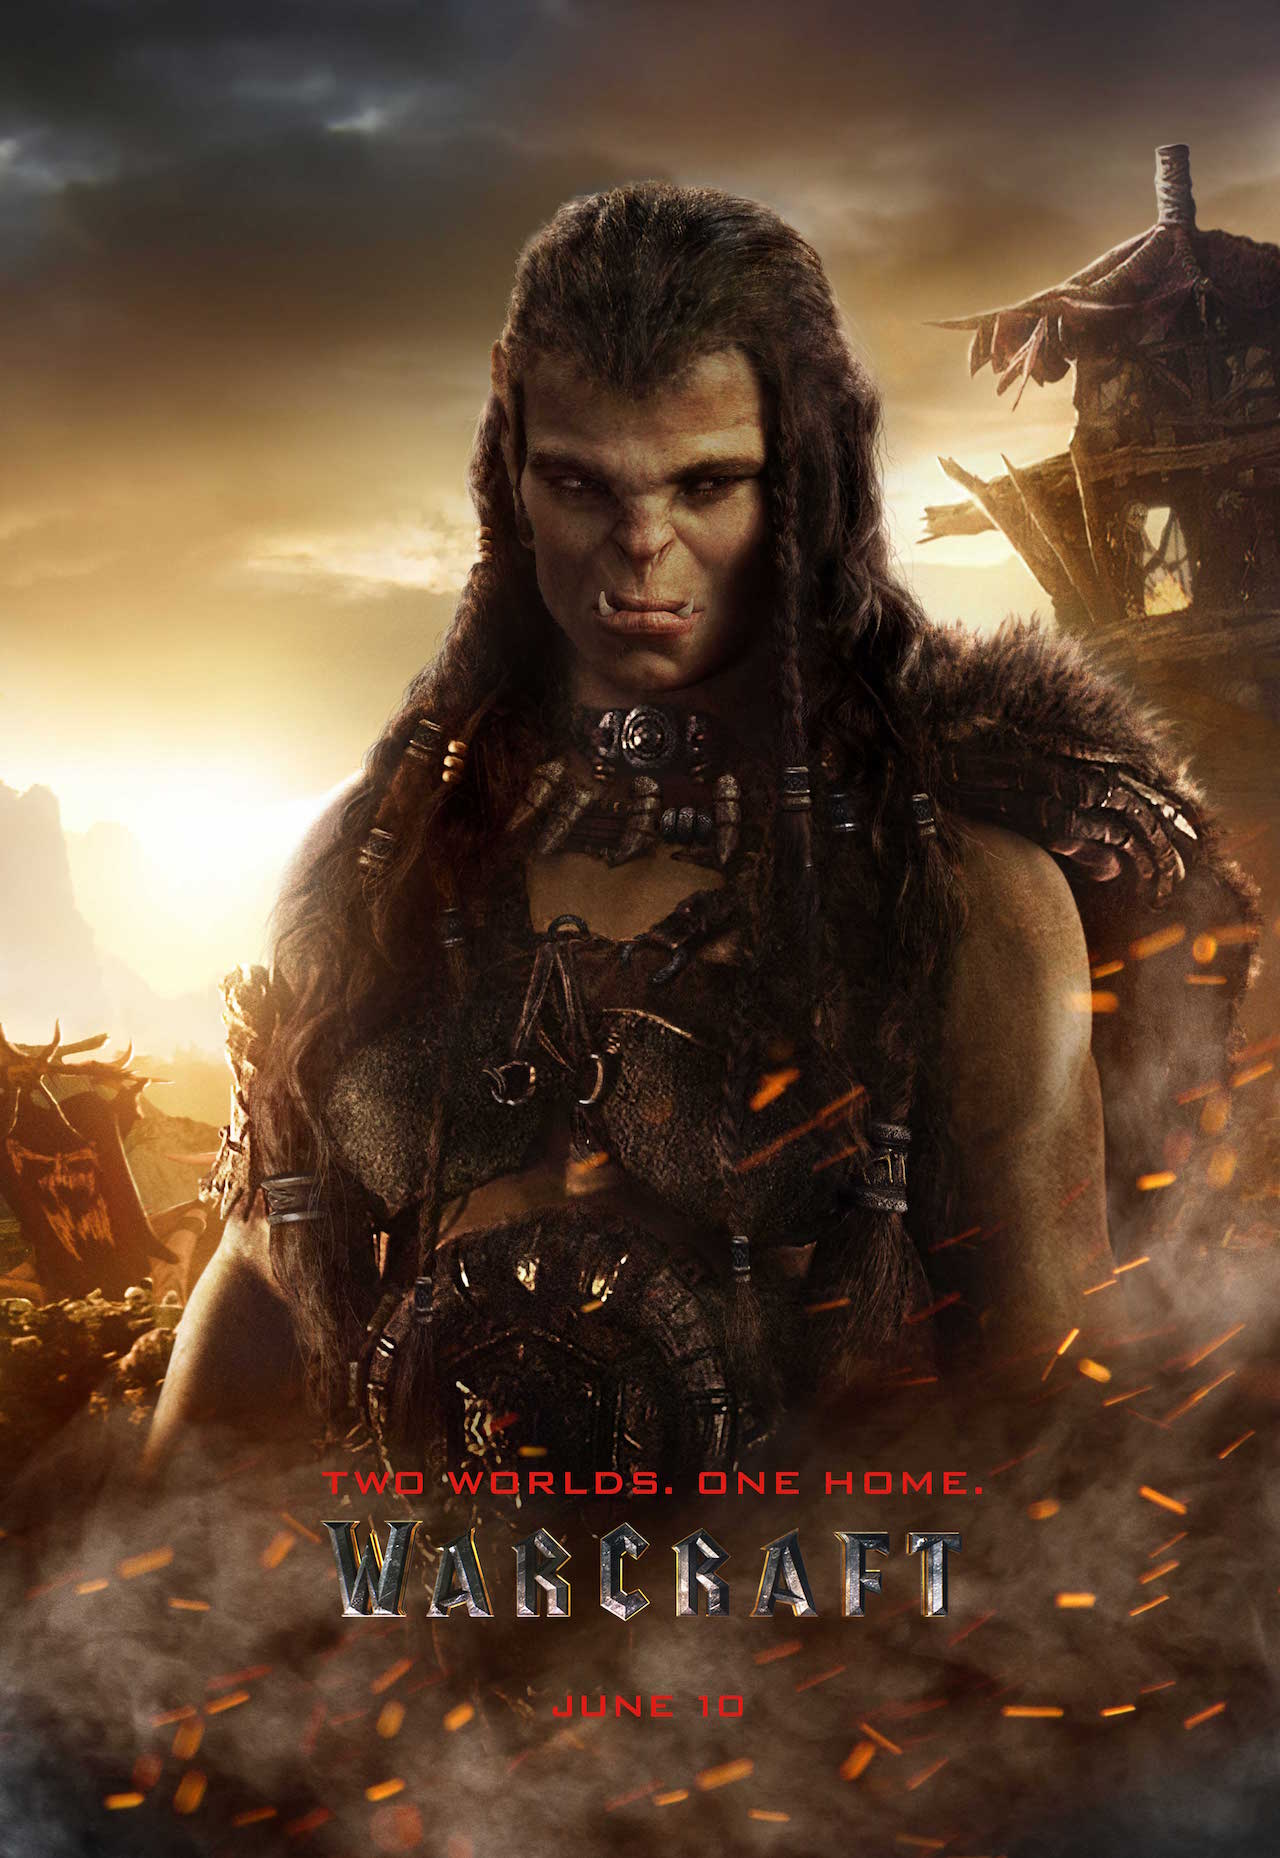 Warcraft-Behind the Scenes-25Abril2016 (1)